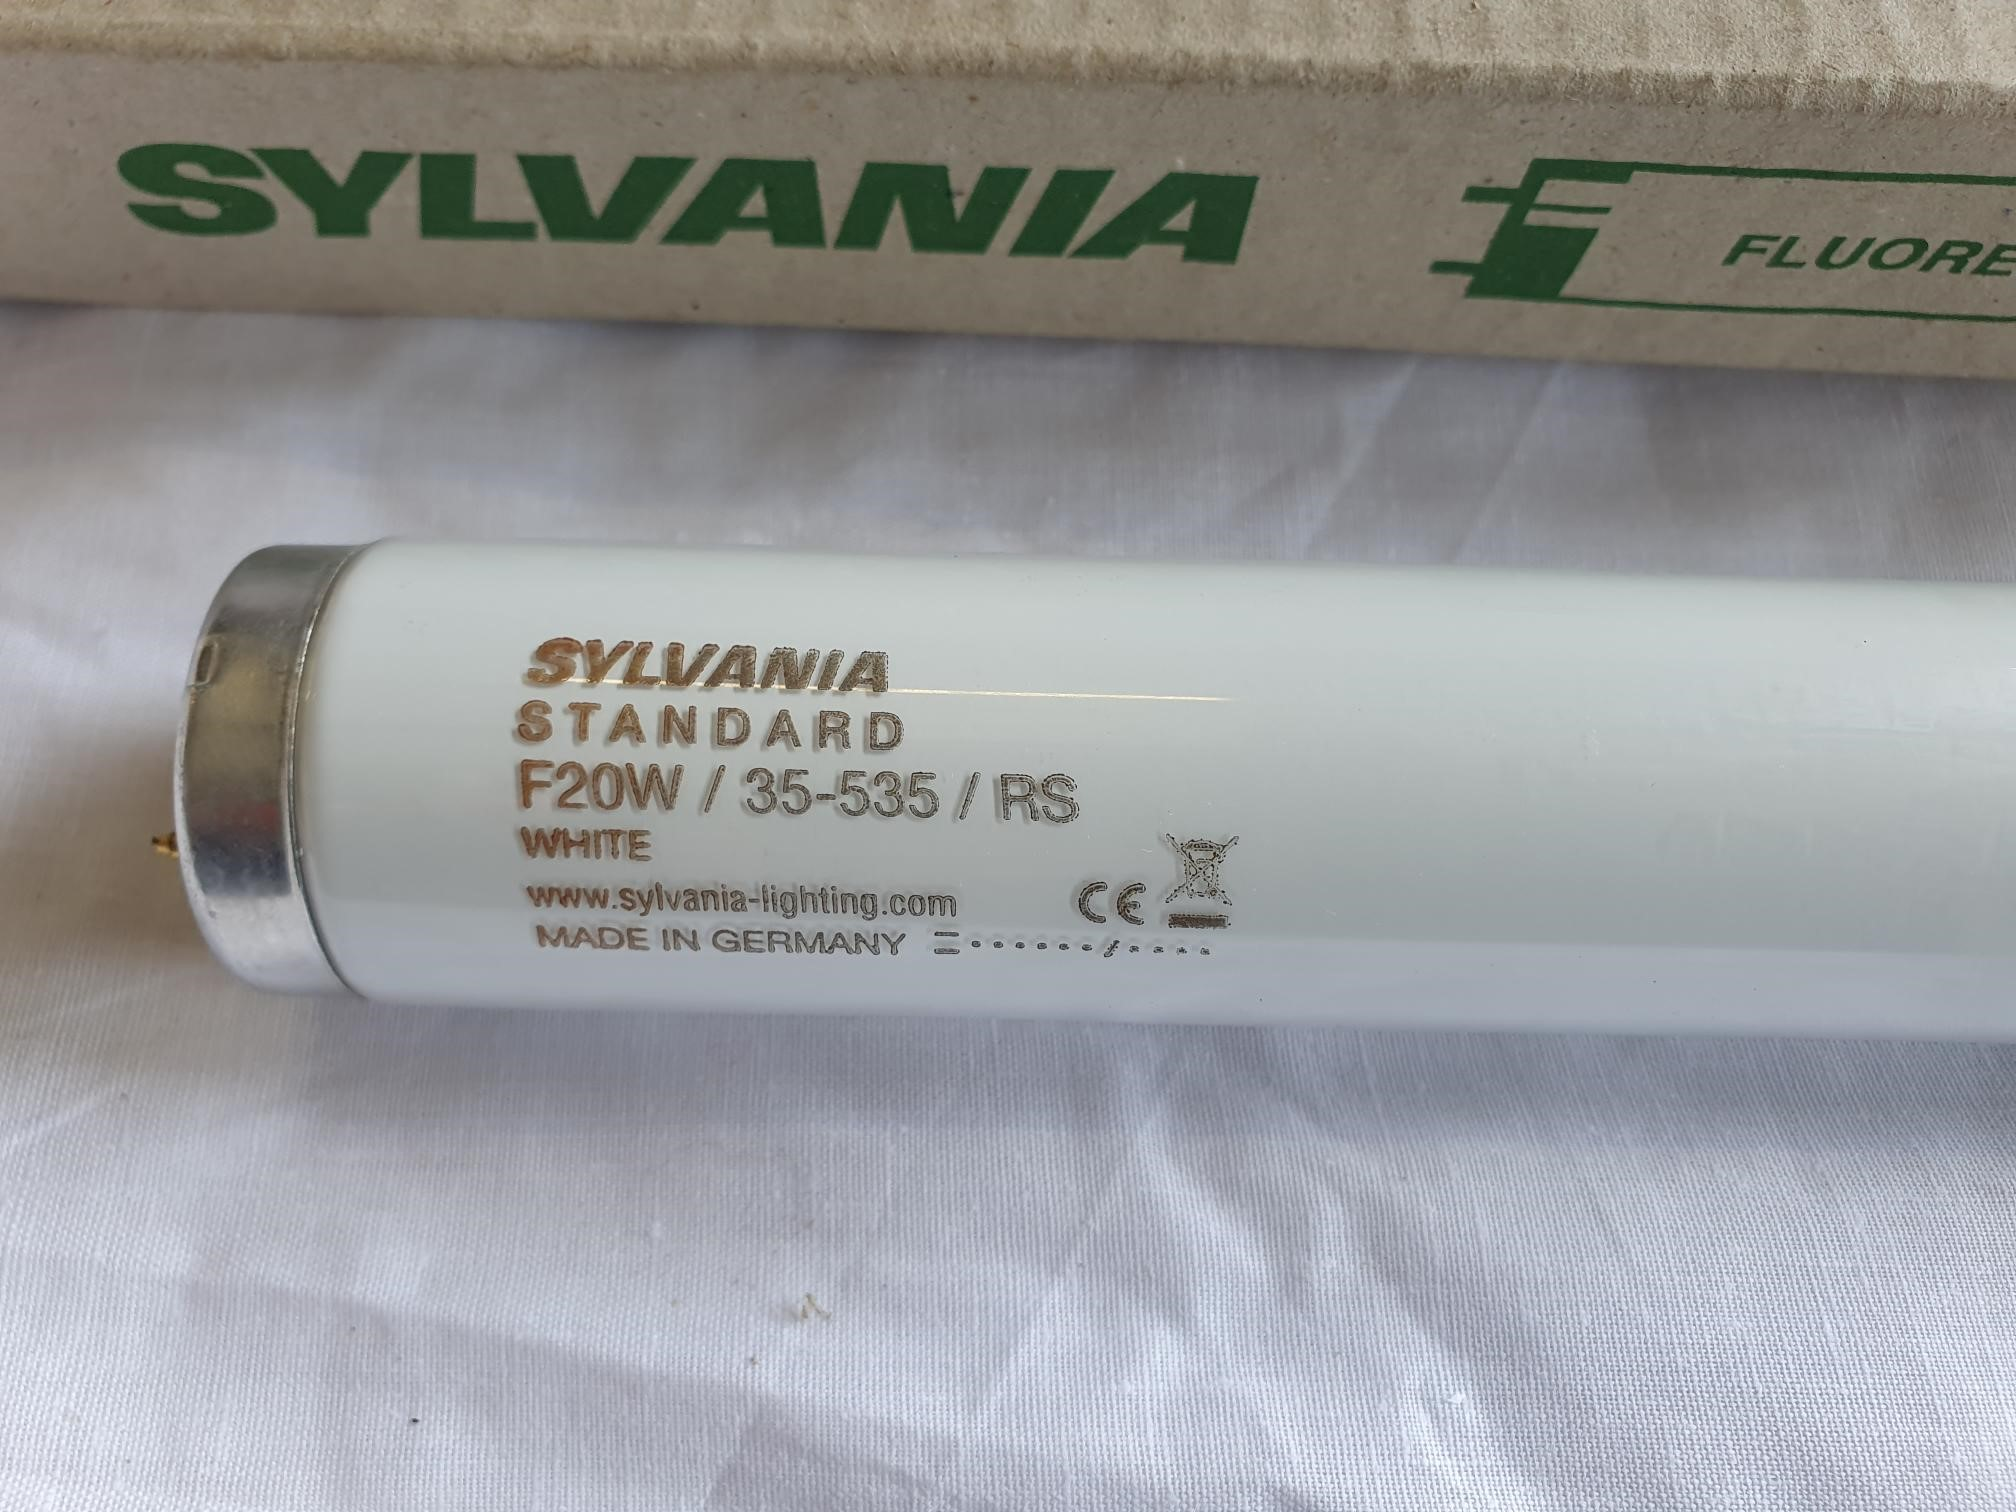 Sylvania Florescent Tube Standard F20W 35 535 RS White 590 Mm Long